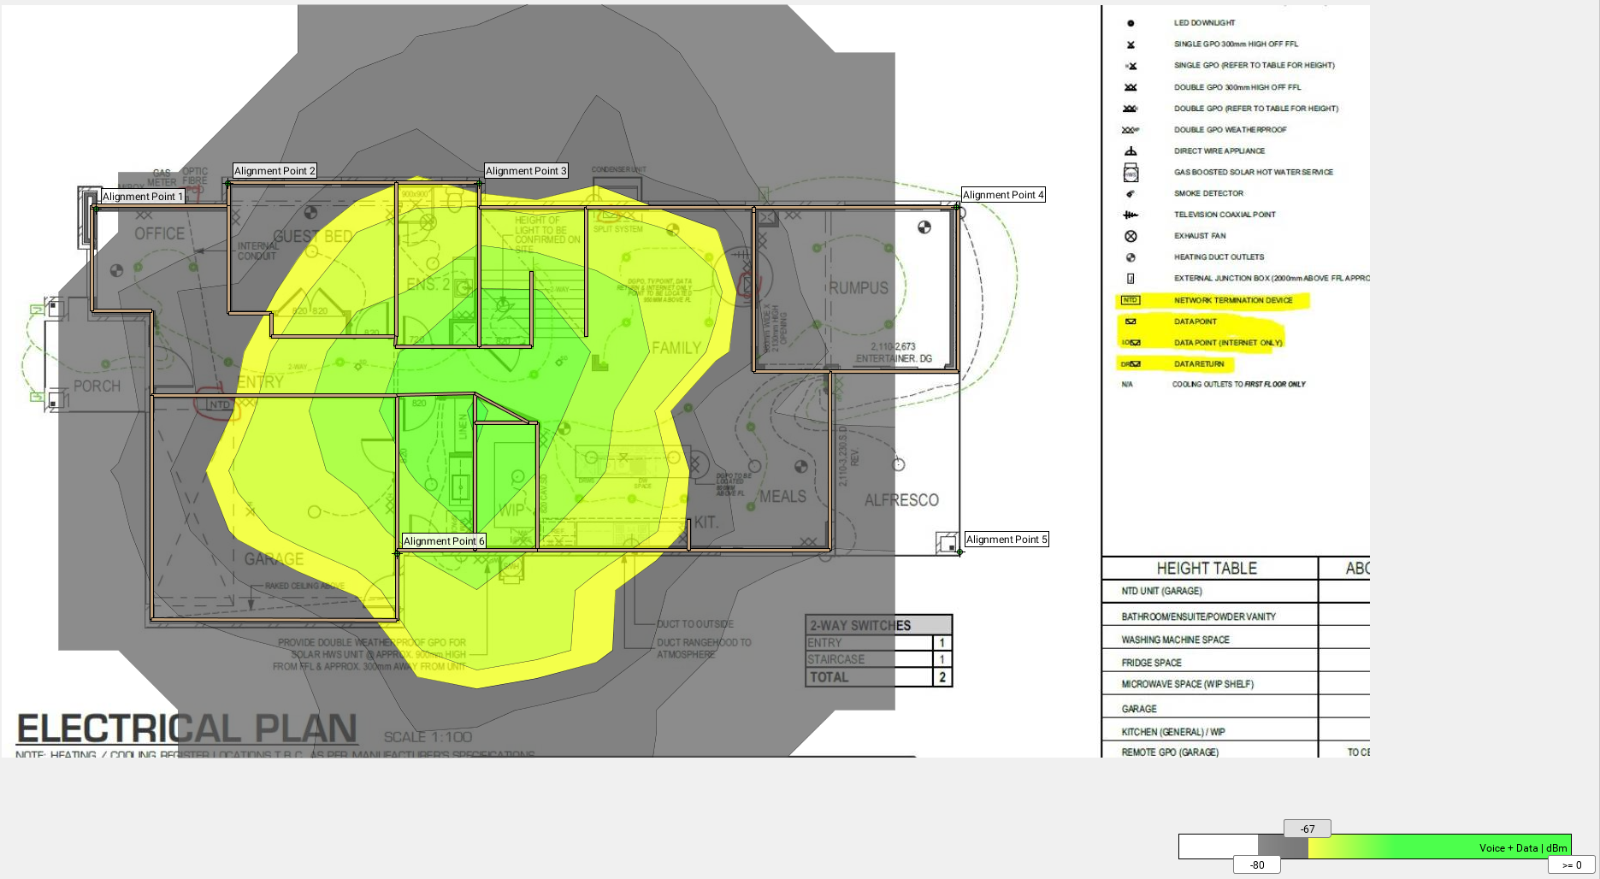 View Topic Nbn Installation Electrical Plan Home Renovation 3 Way Switch Animation Ground Floor Showing Wifi Penetrationground Penetration From Fist Ap Ac Prolike Add A Comment Pin To Ideaboard Share